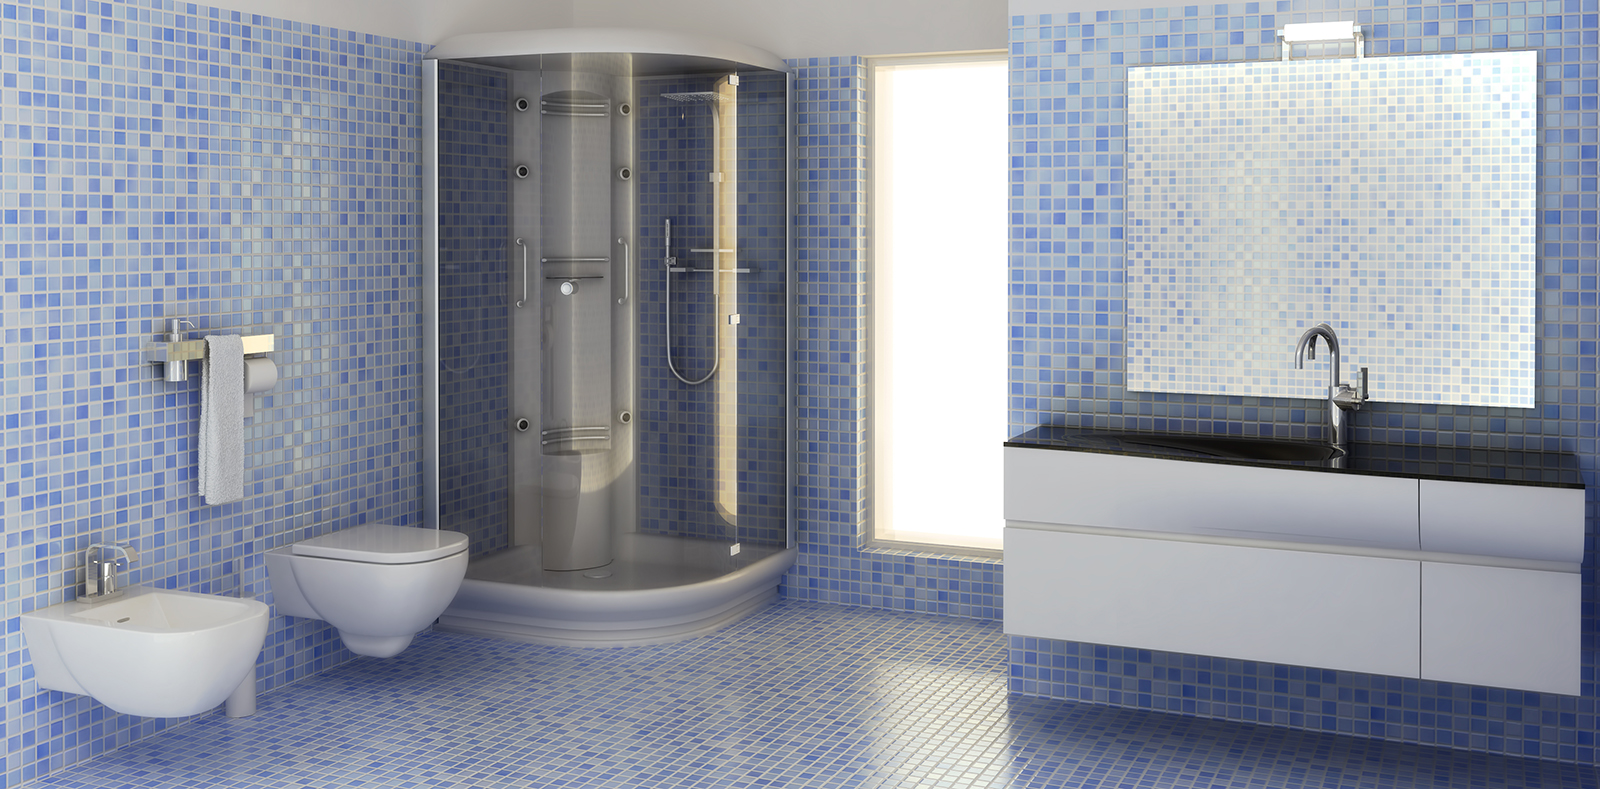 dry bathrooms shutterstock_68392921